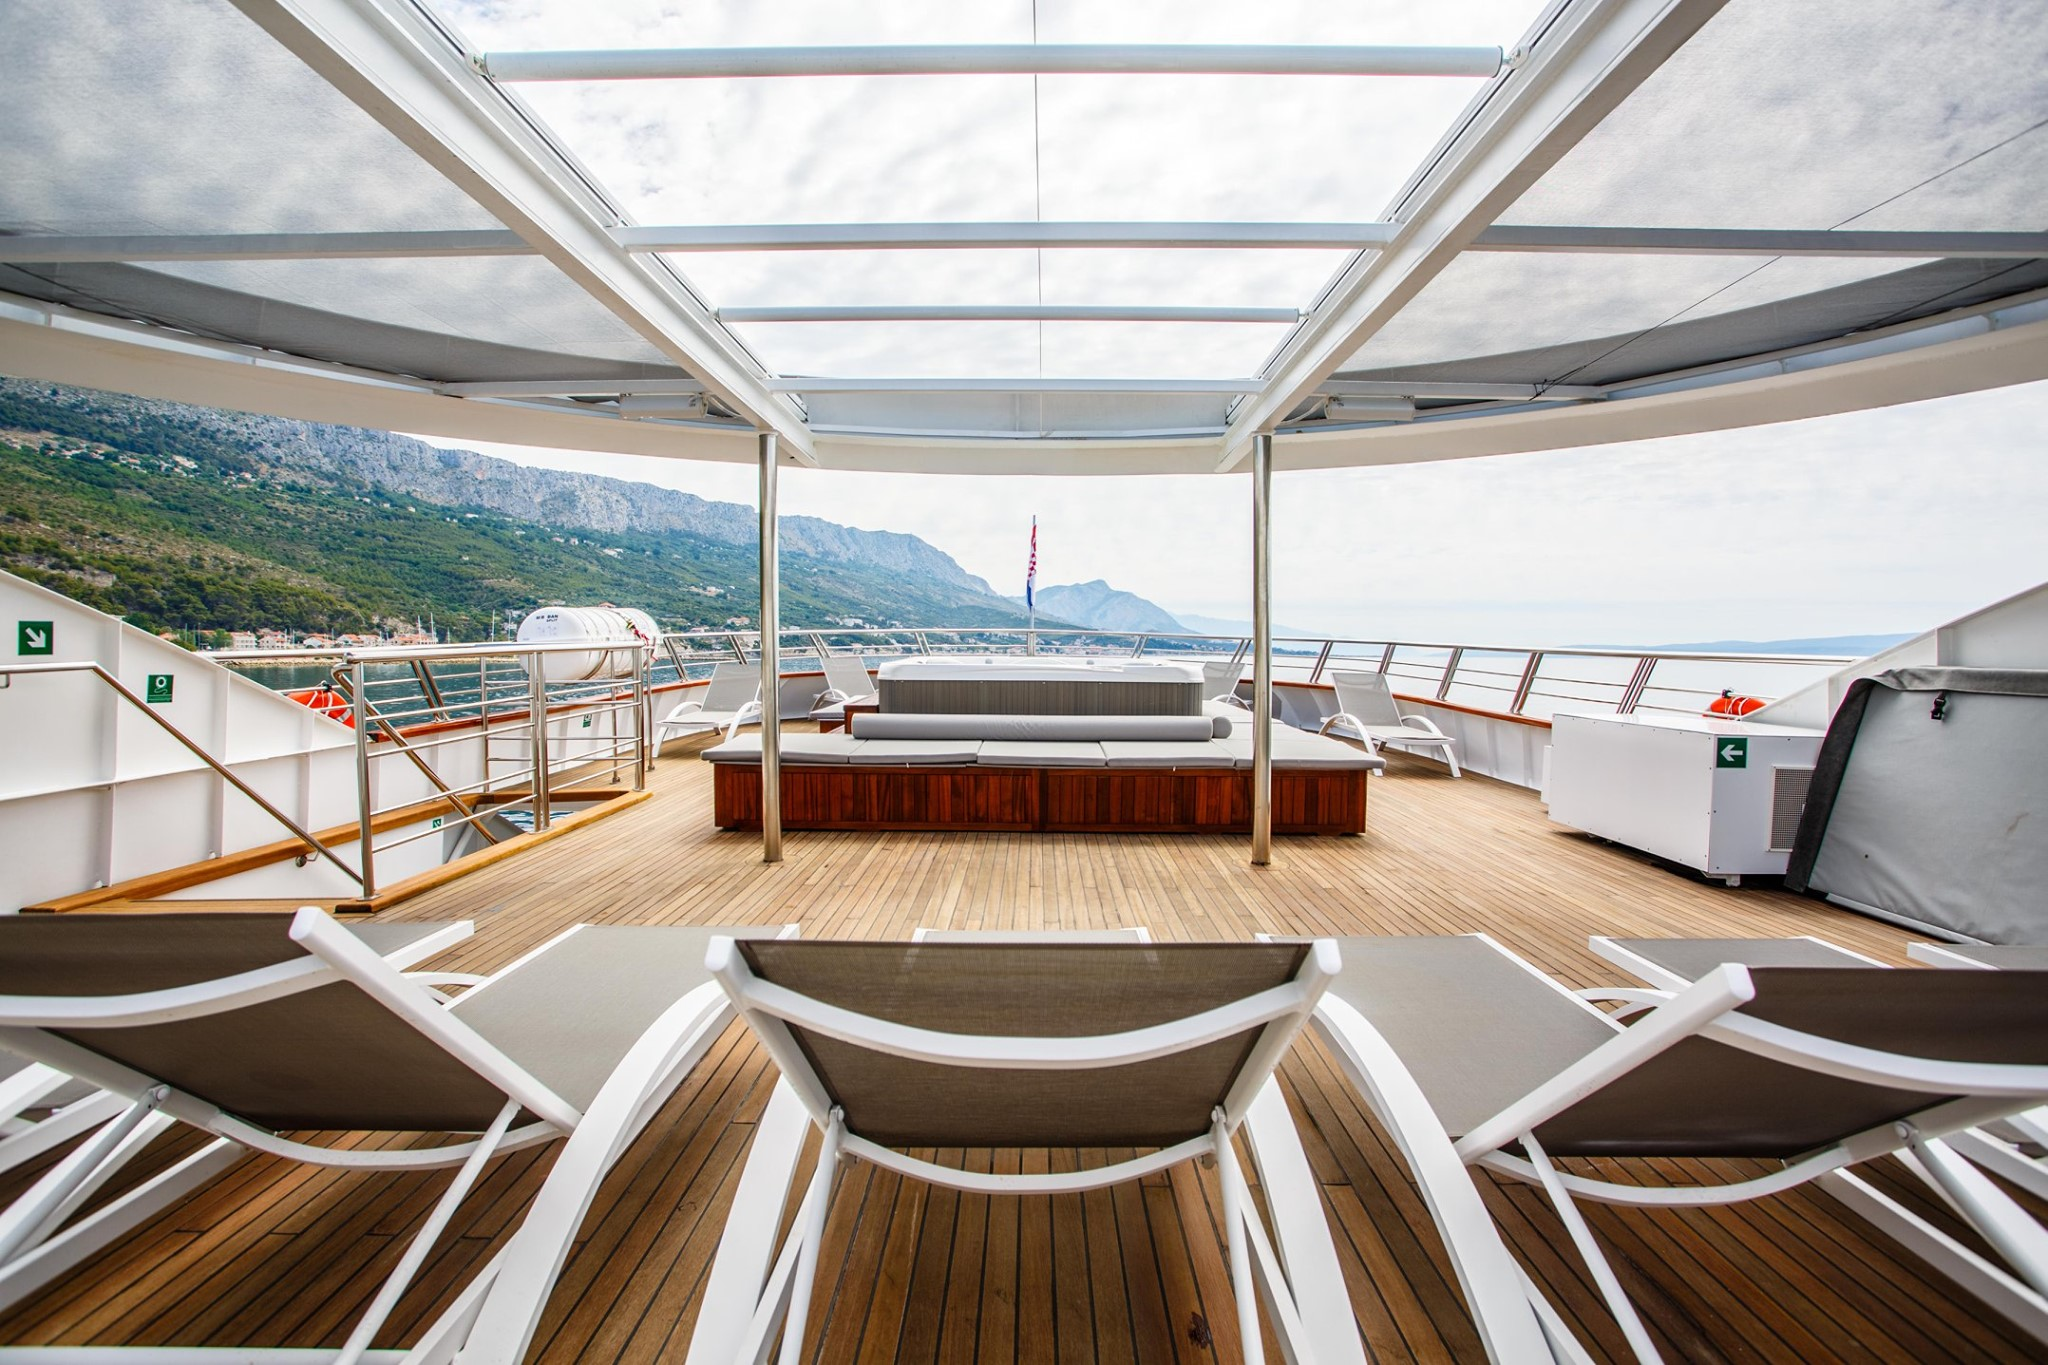 Adriatic Discovery Cruise from Dubrovnik to Split on Ban 17